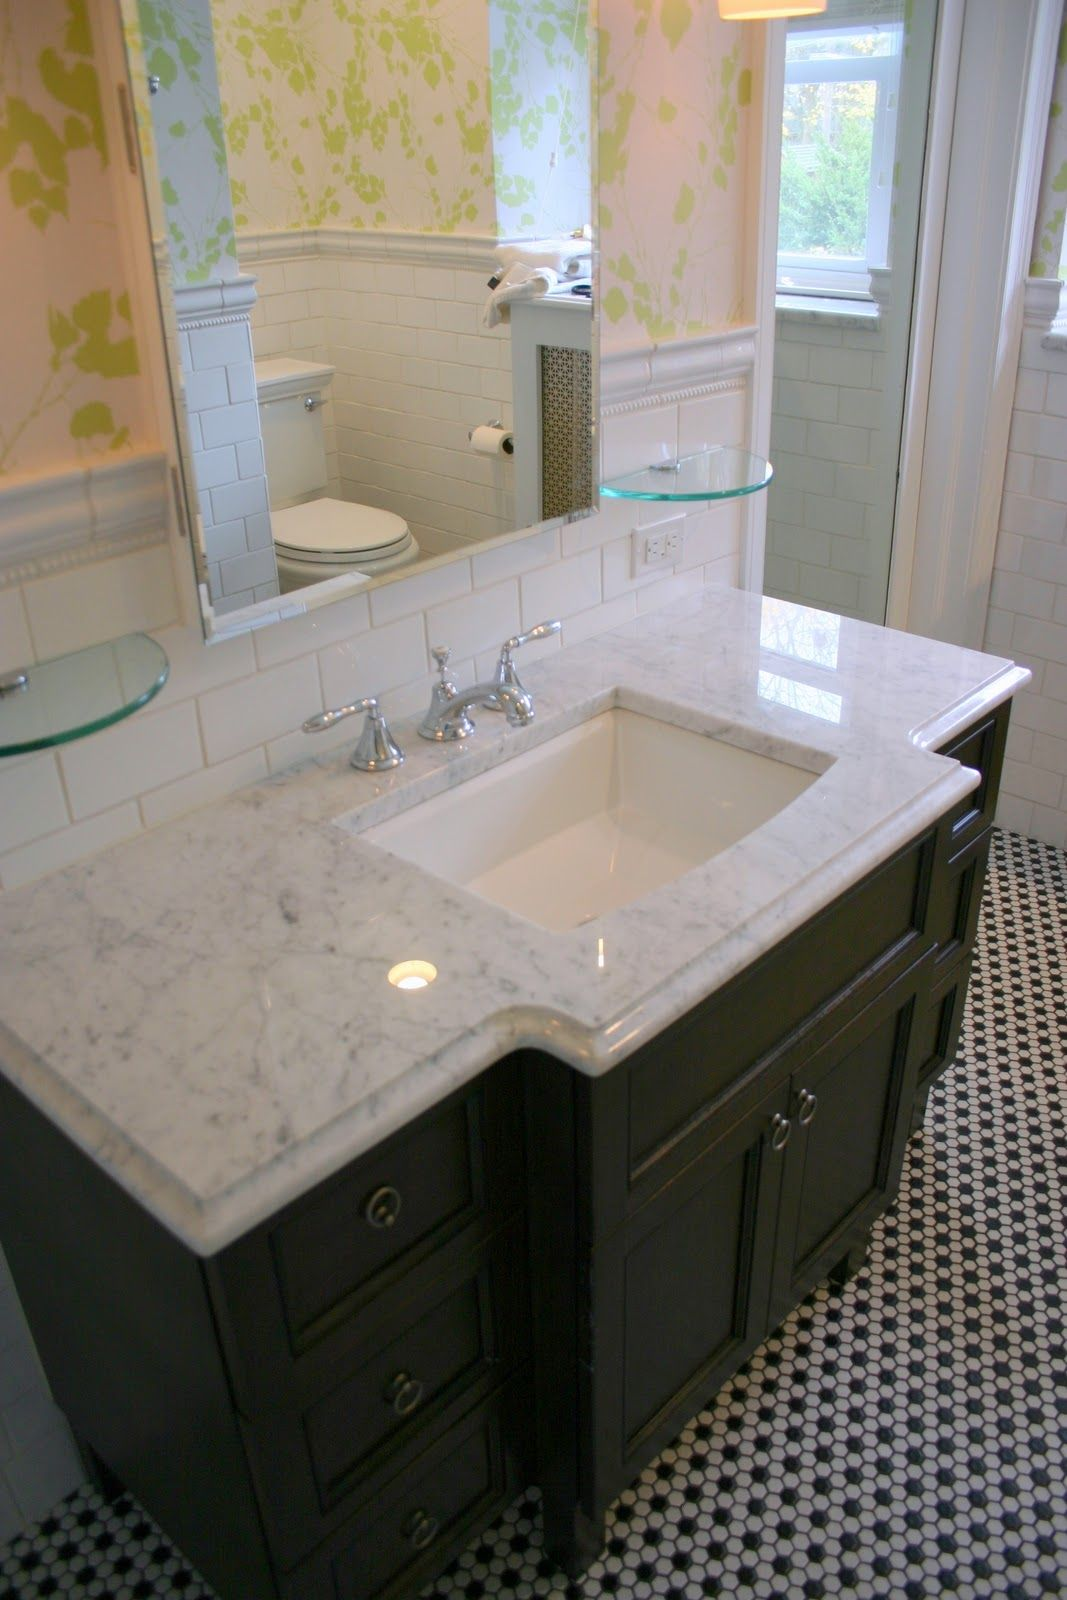 Small bathroom hexagon floor tile ideas bathroom marble bathroom vanities design ideas elegant Marble hex tile bathroom floor